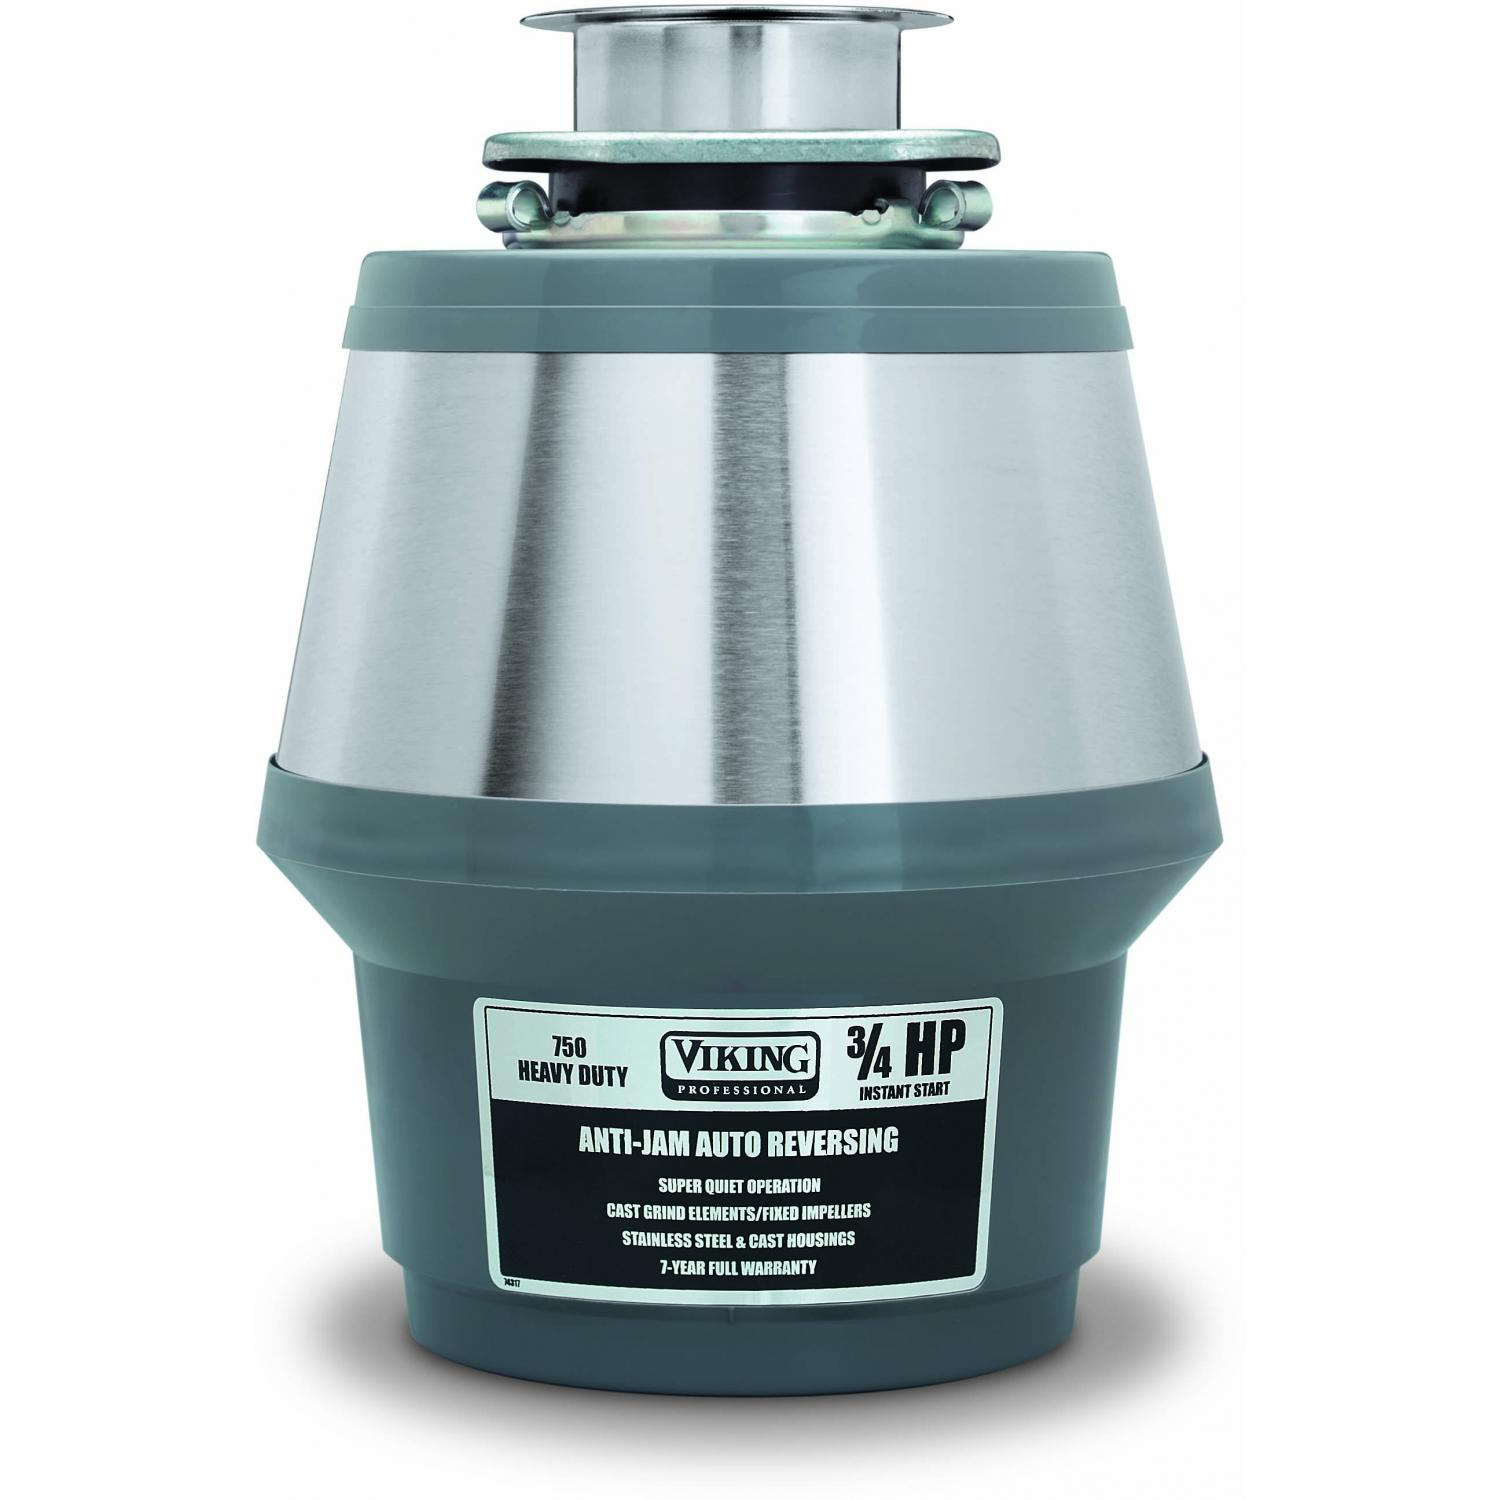 Viking VCFW750 3/4 HP Continuous Feed Food Waste Disposer